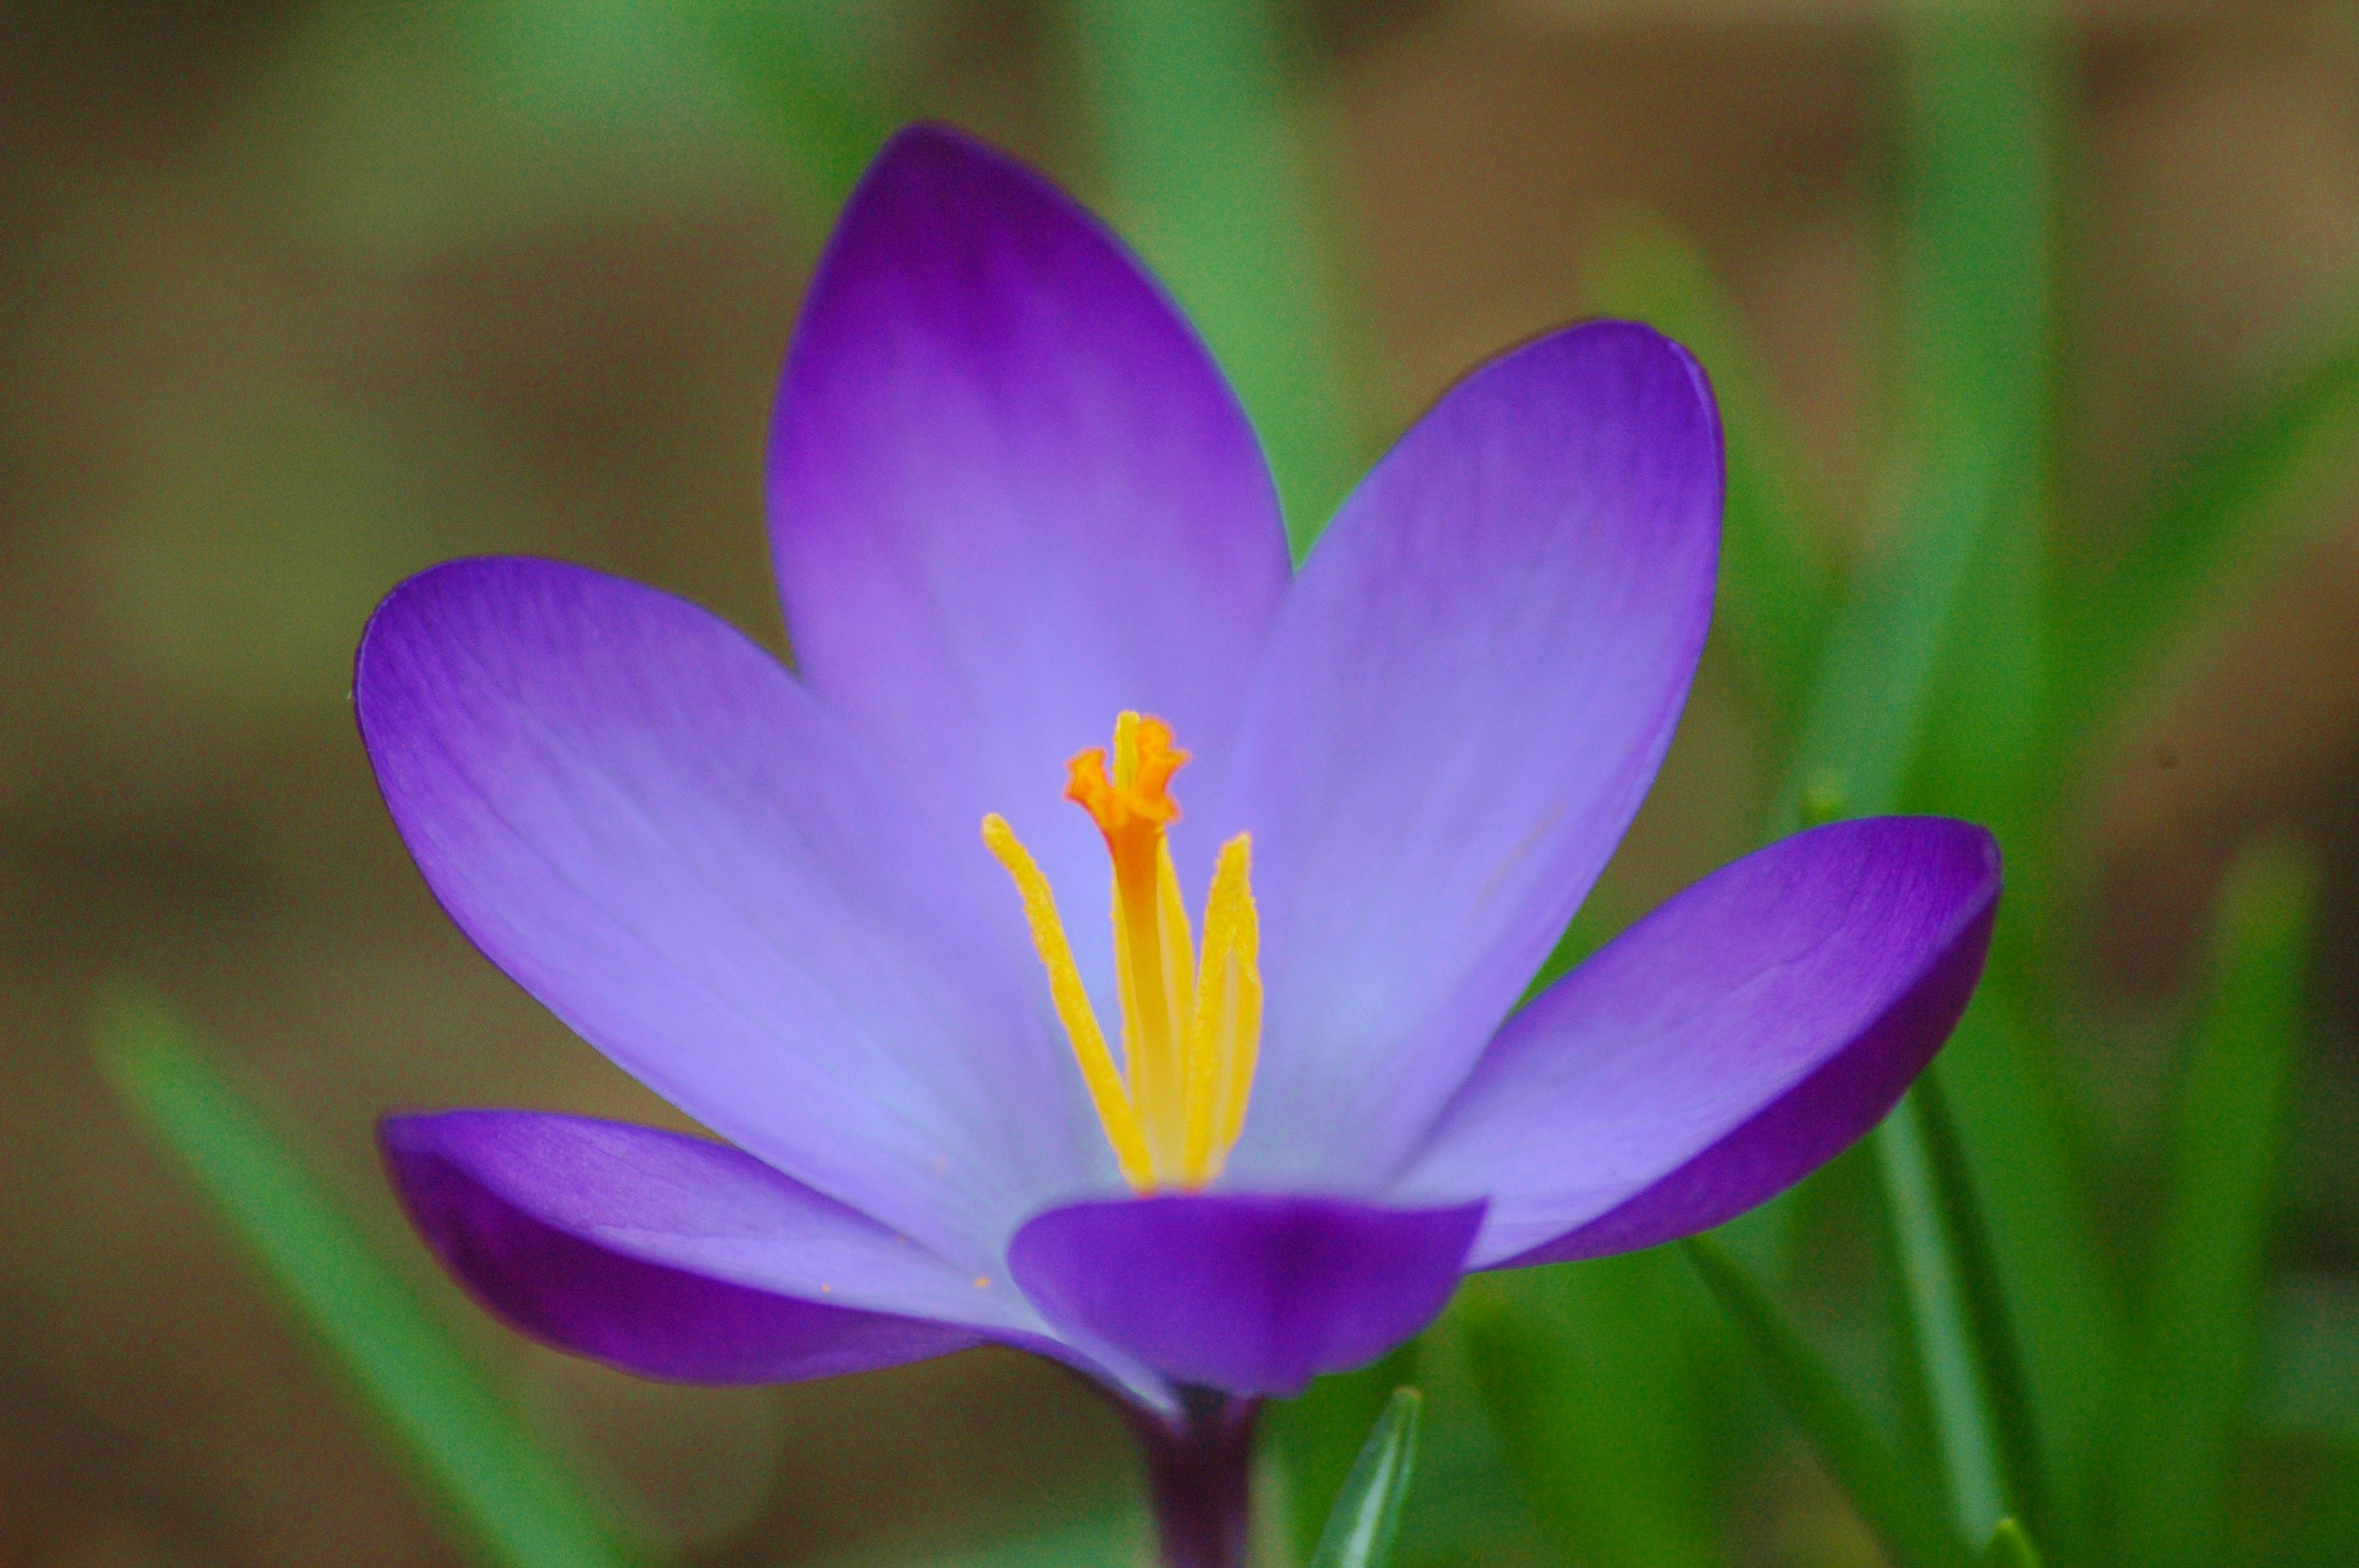 Saffron Crocus High Quality Wallpapers